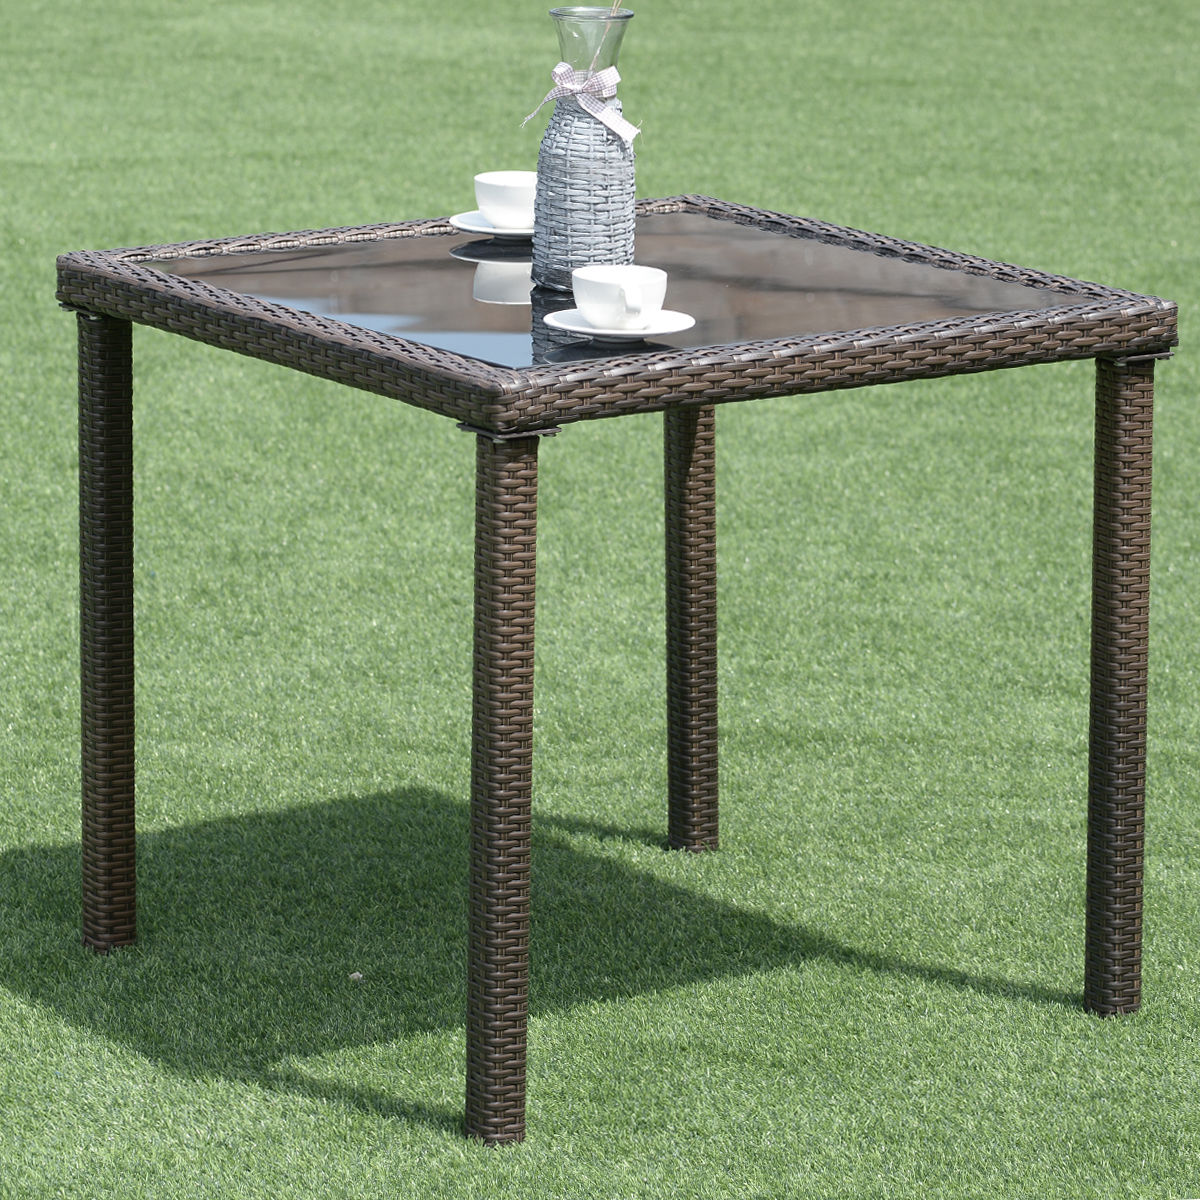 Costway 31.5 '' Garden Table Patio Outdoor Wicker Square Dining Table W/Glass Top